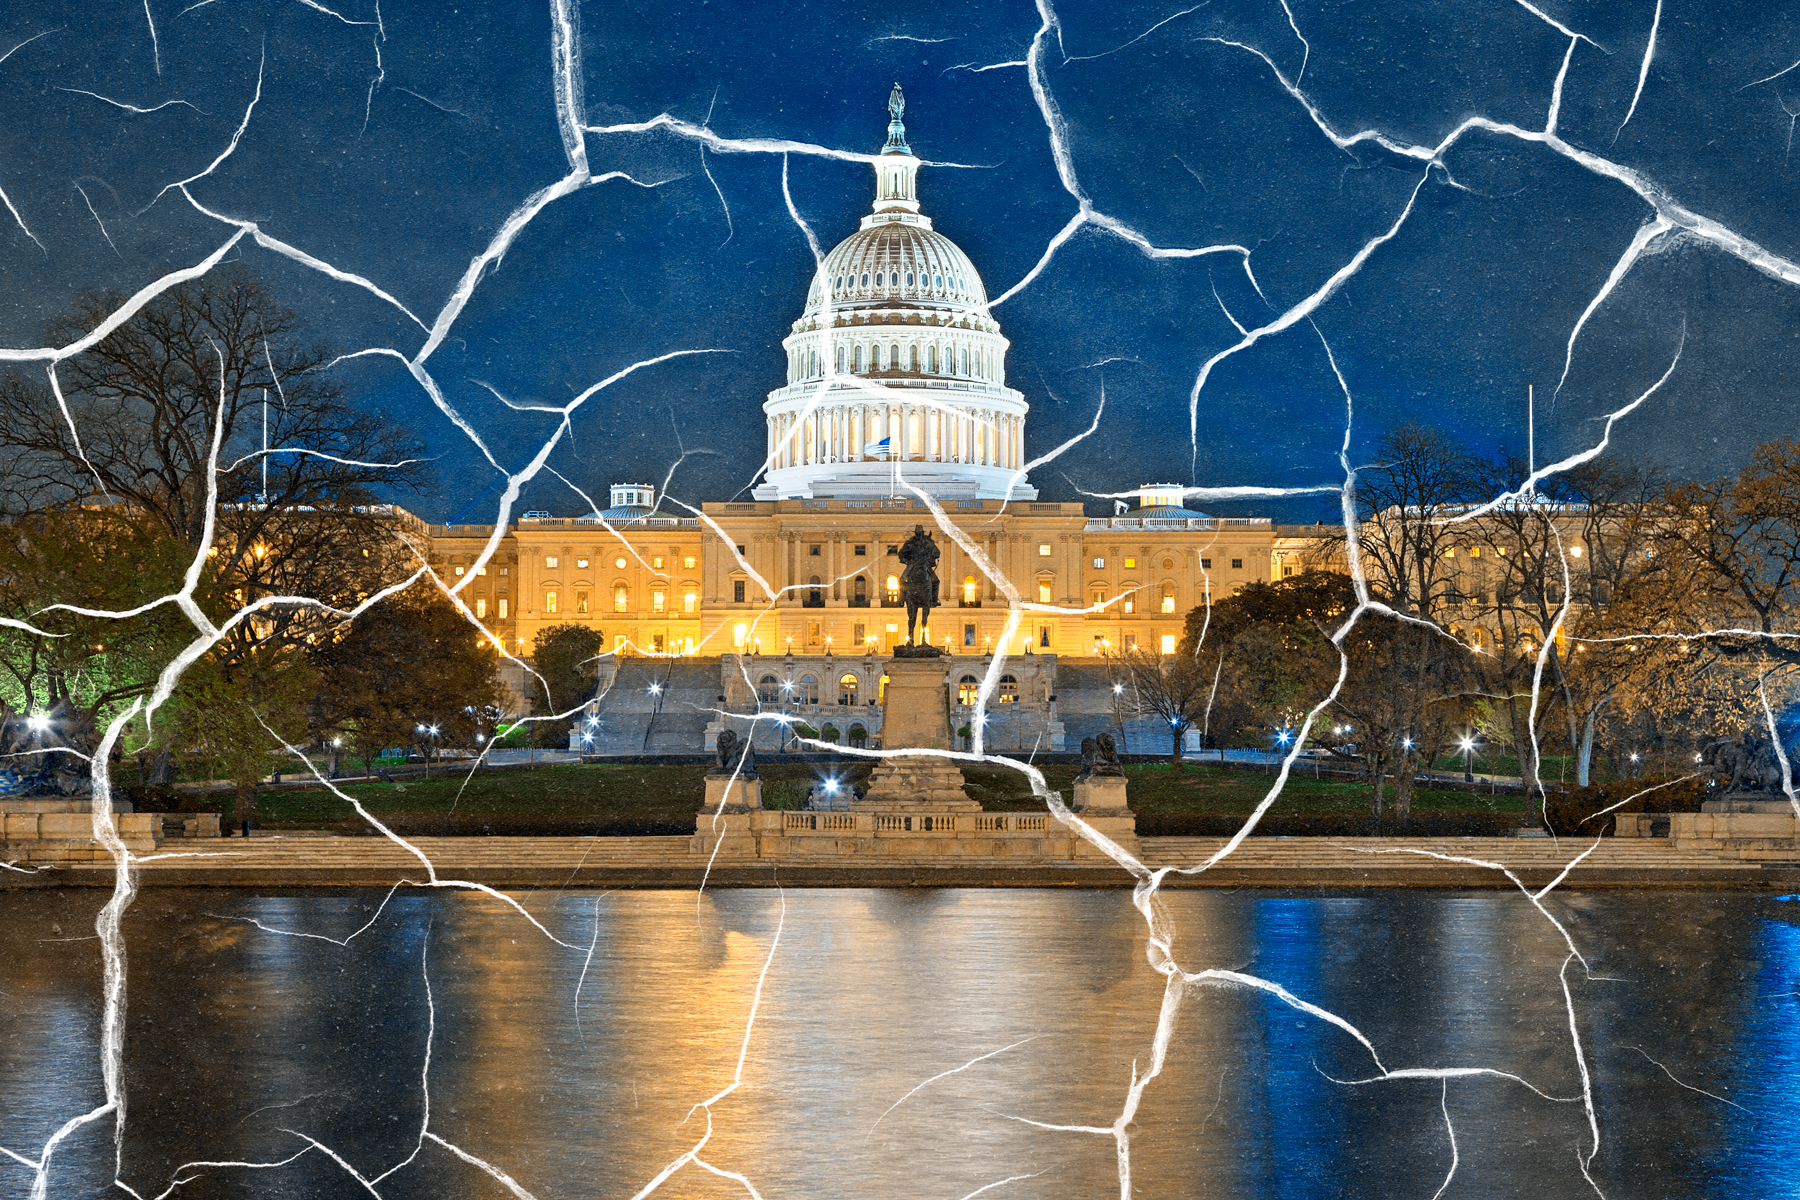 Fractured Congress, Abstract, Outdoors, Scenic, Scenery, HQ Photo